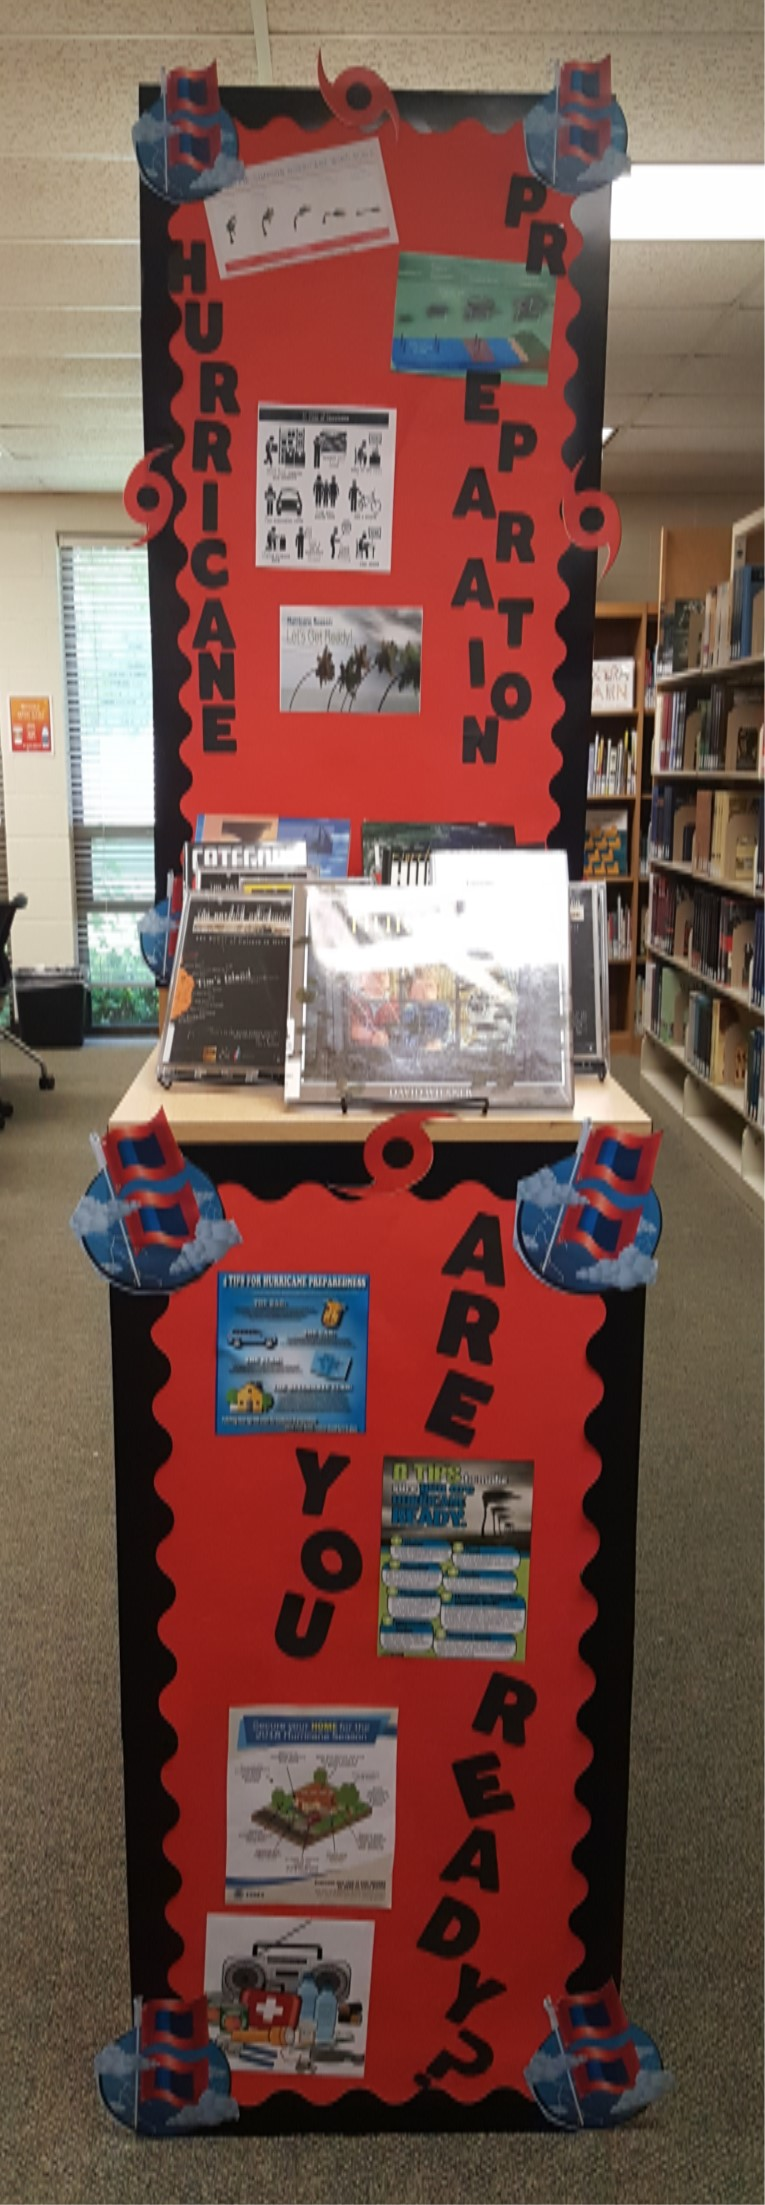 Image:  Library Display for Hurricane Preparedness 2018